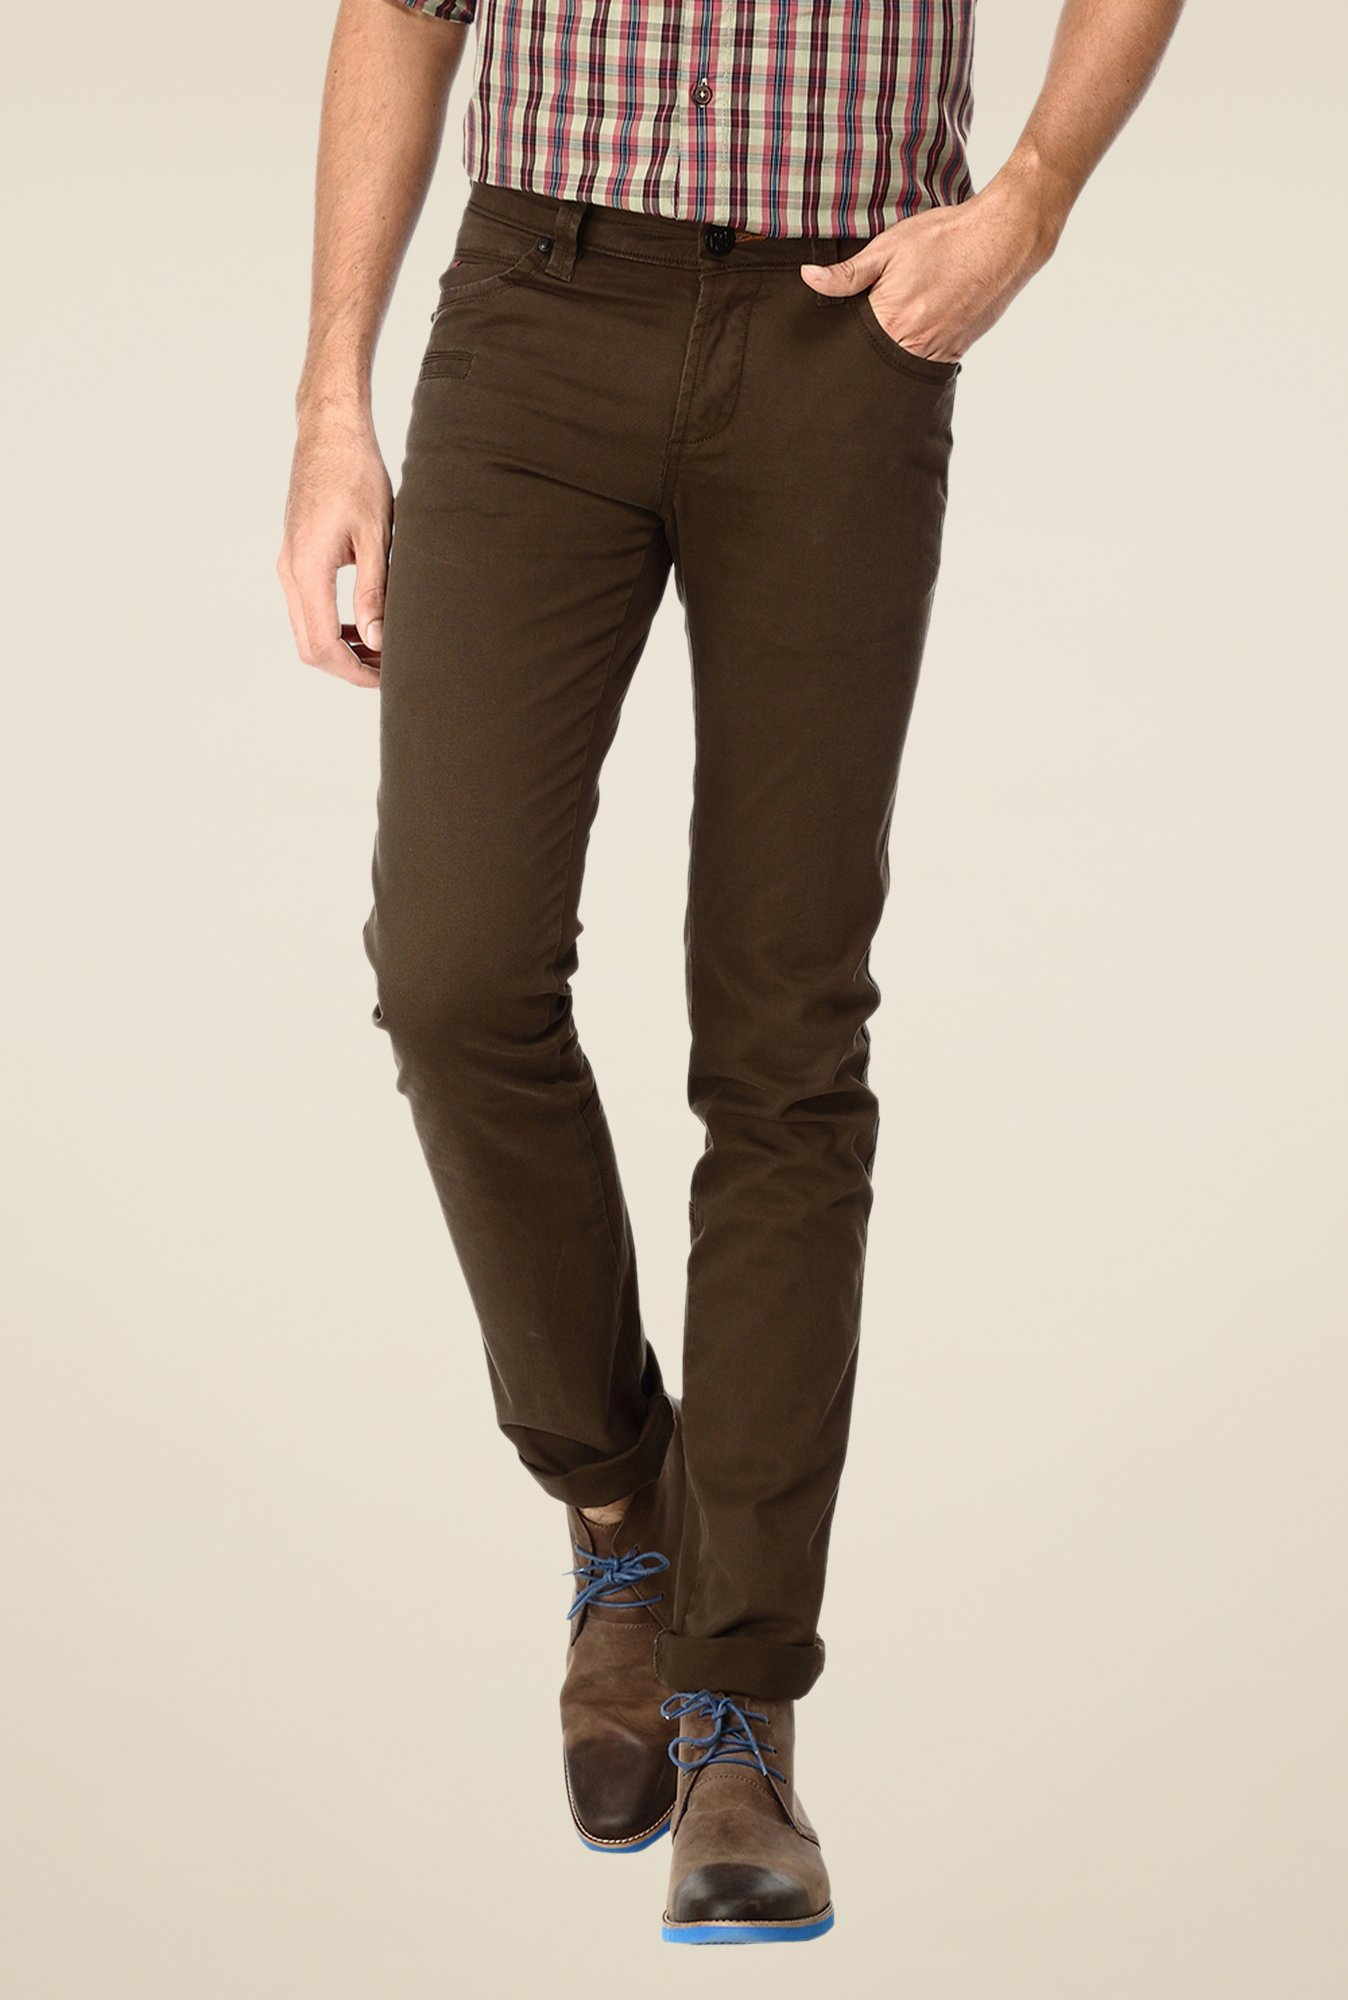 Basics Brown Solid Low-rise Trousers